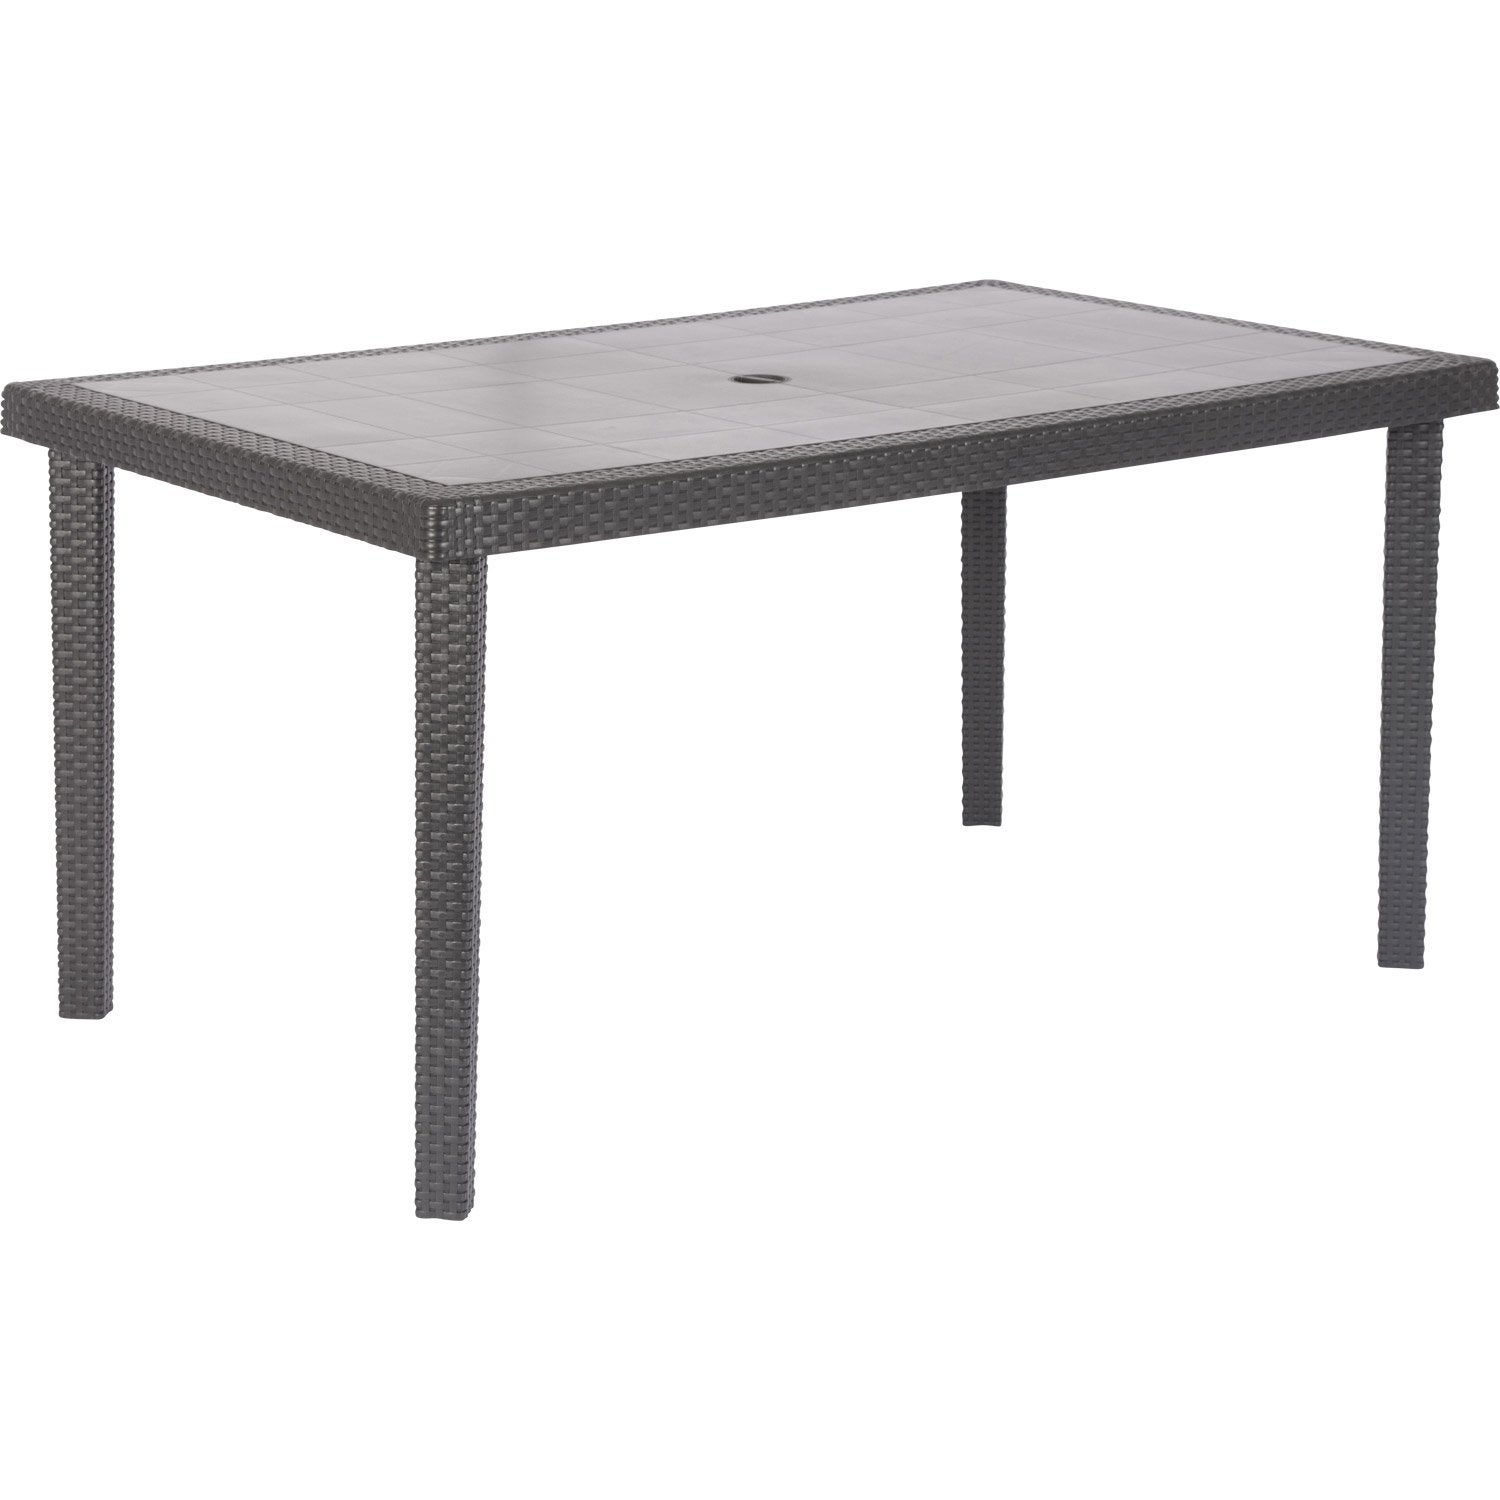 Table de jardin boh me rectangulaire anthracite 6 - Table rabattable leroy merlin ...